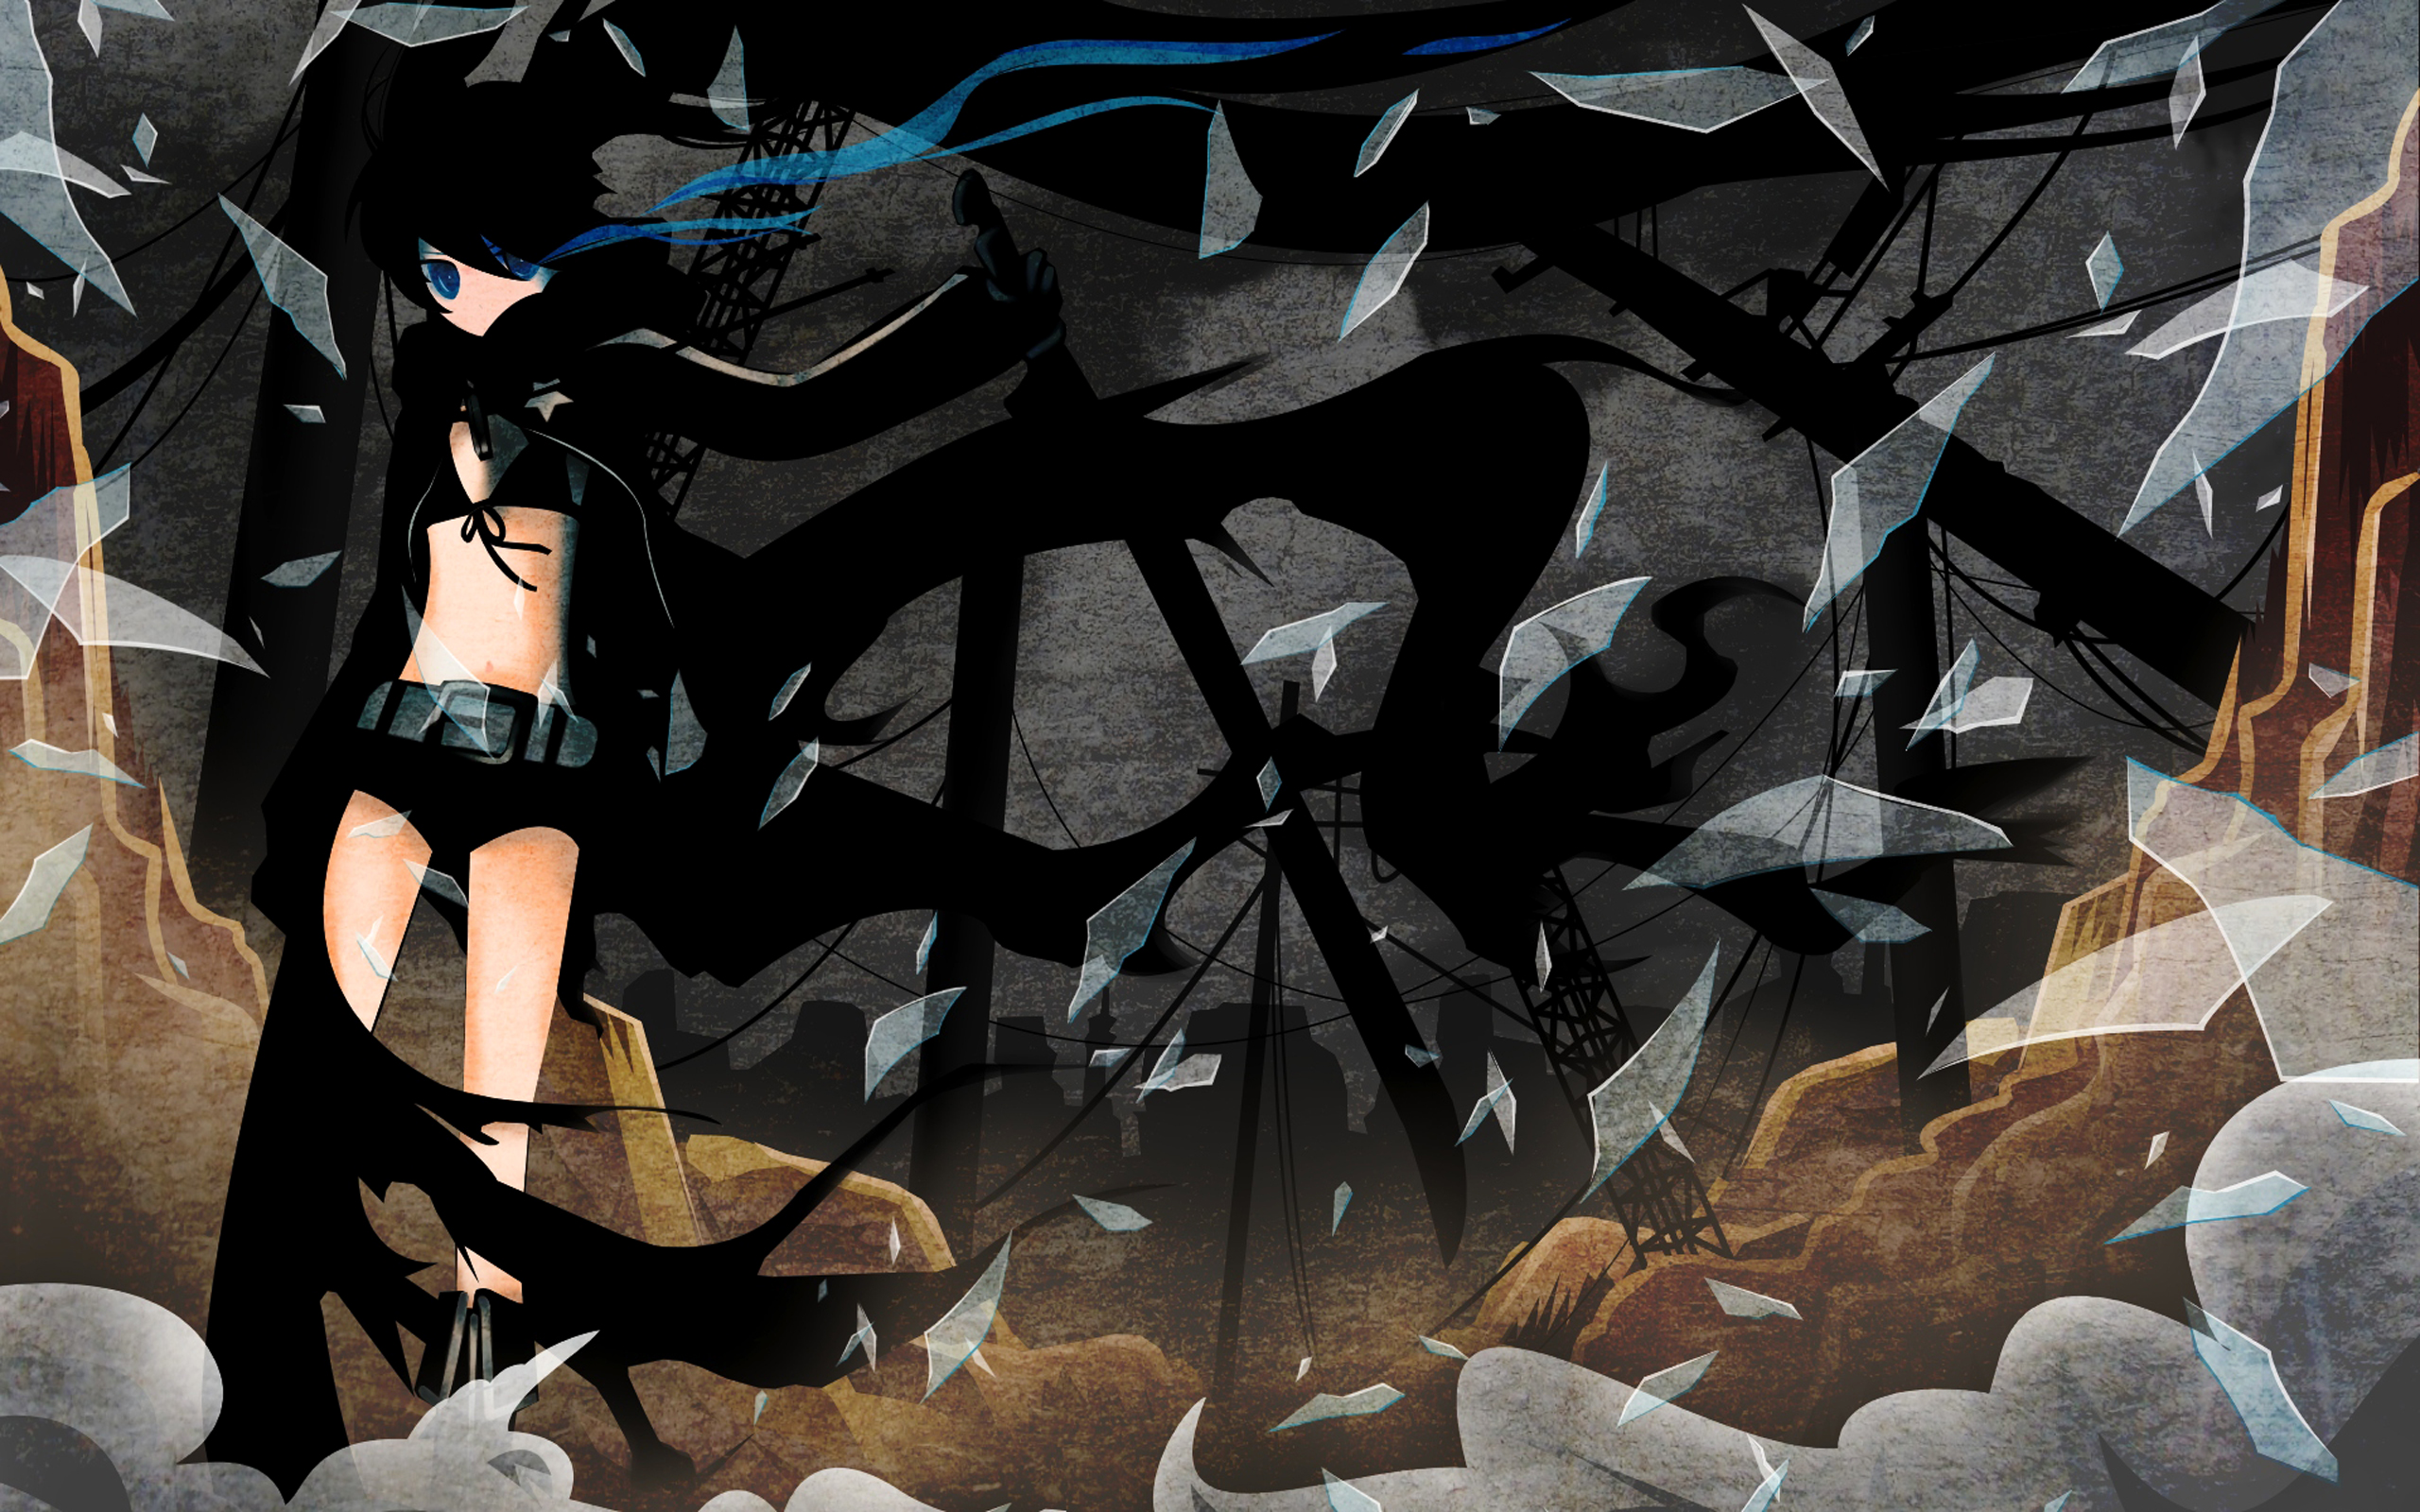 Anime - Black Rock Shooter Fond d'écran